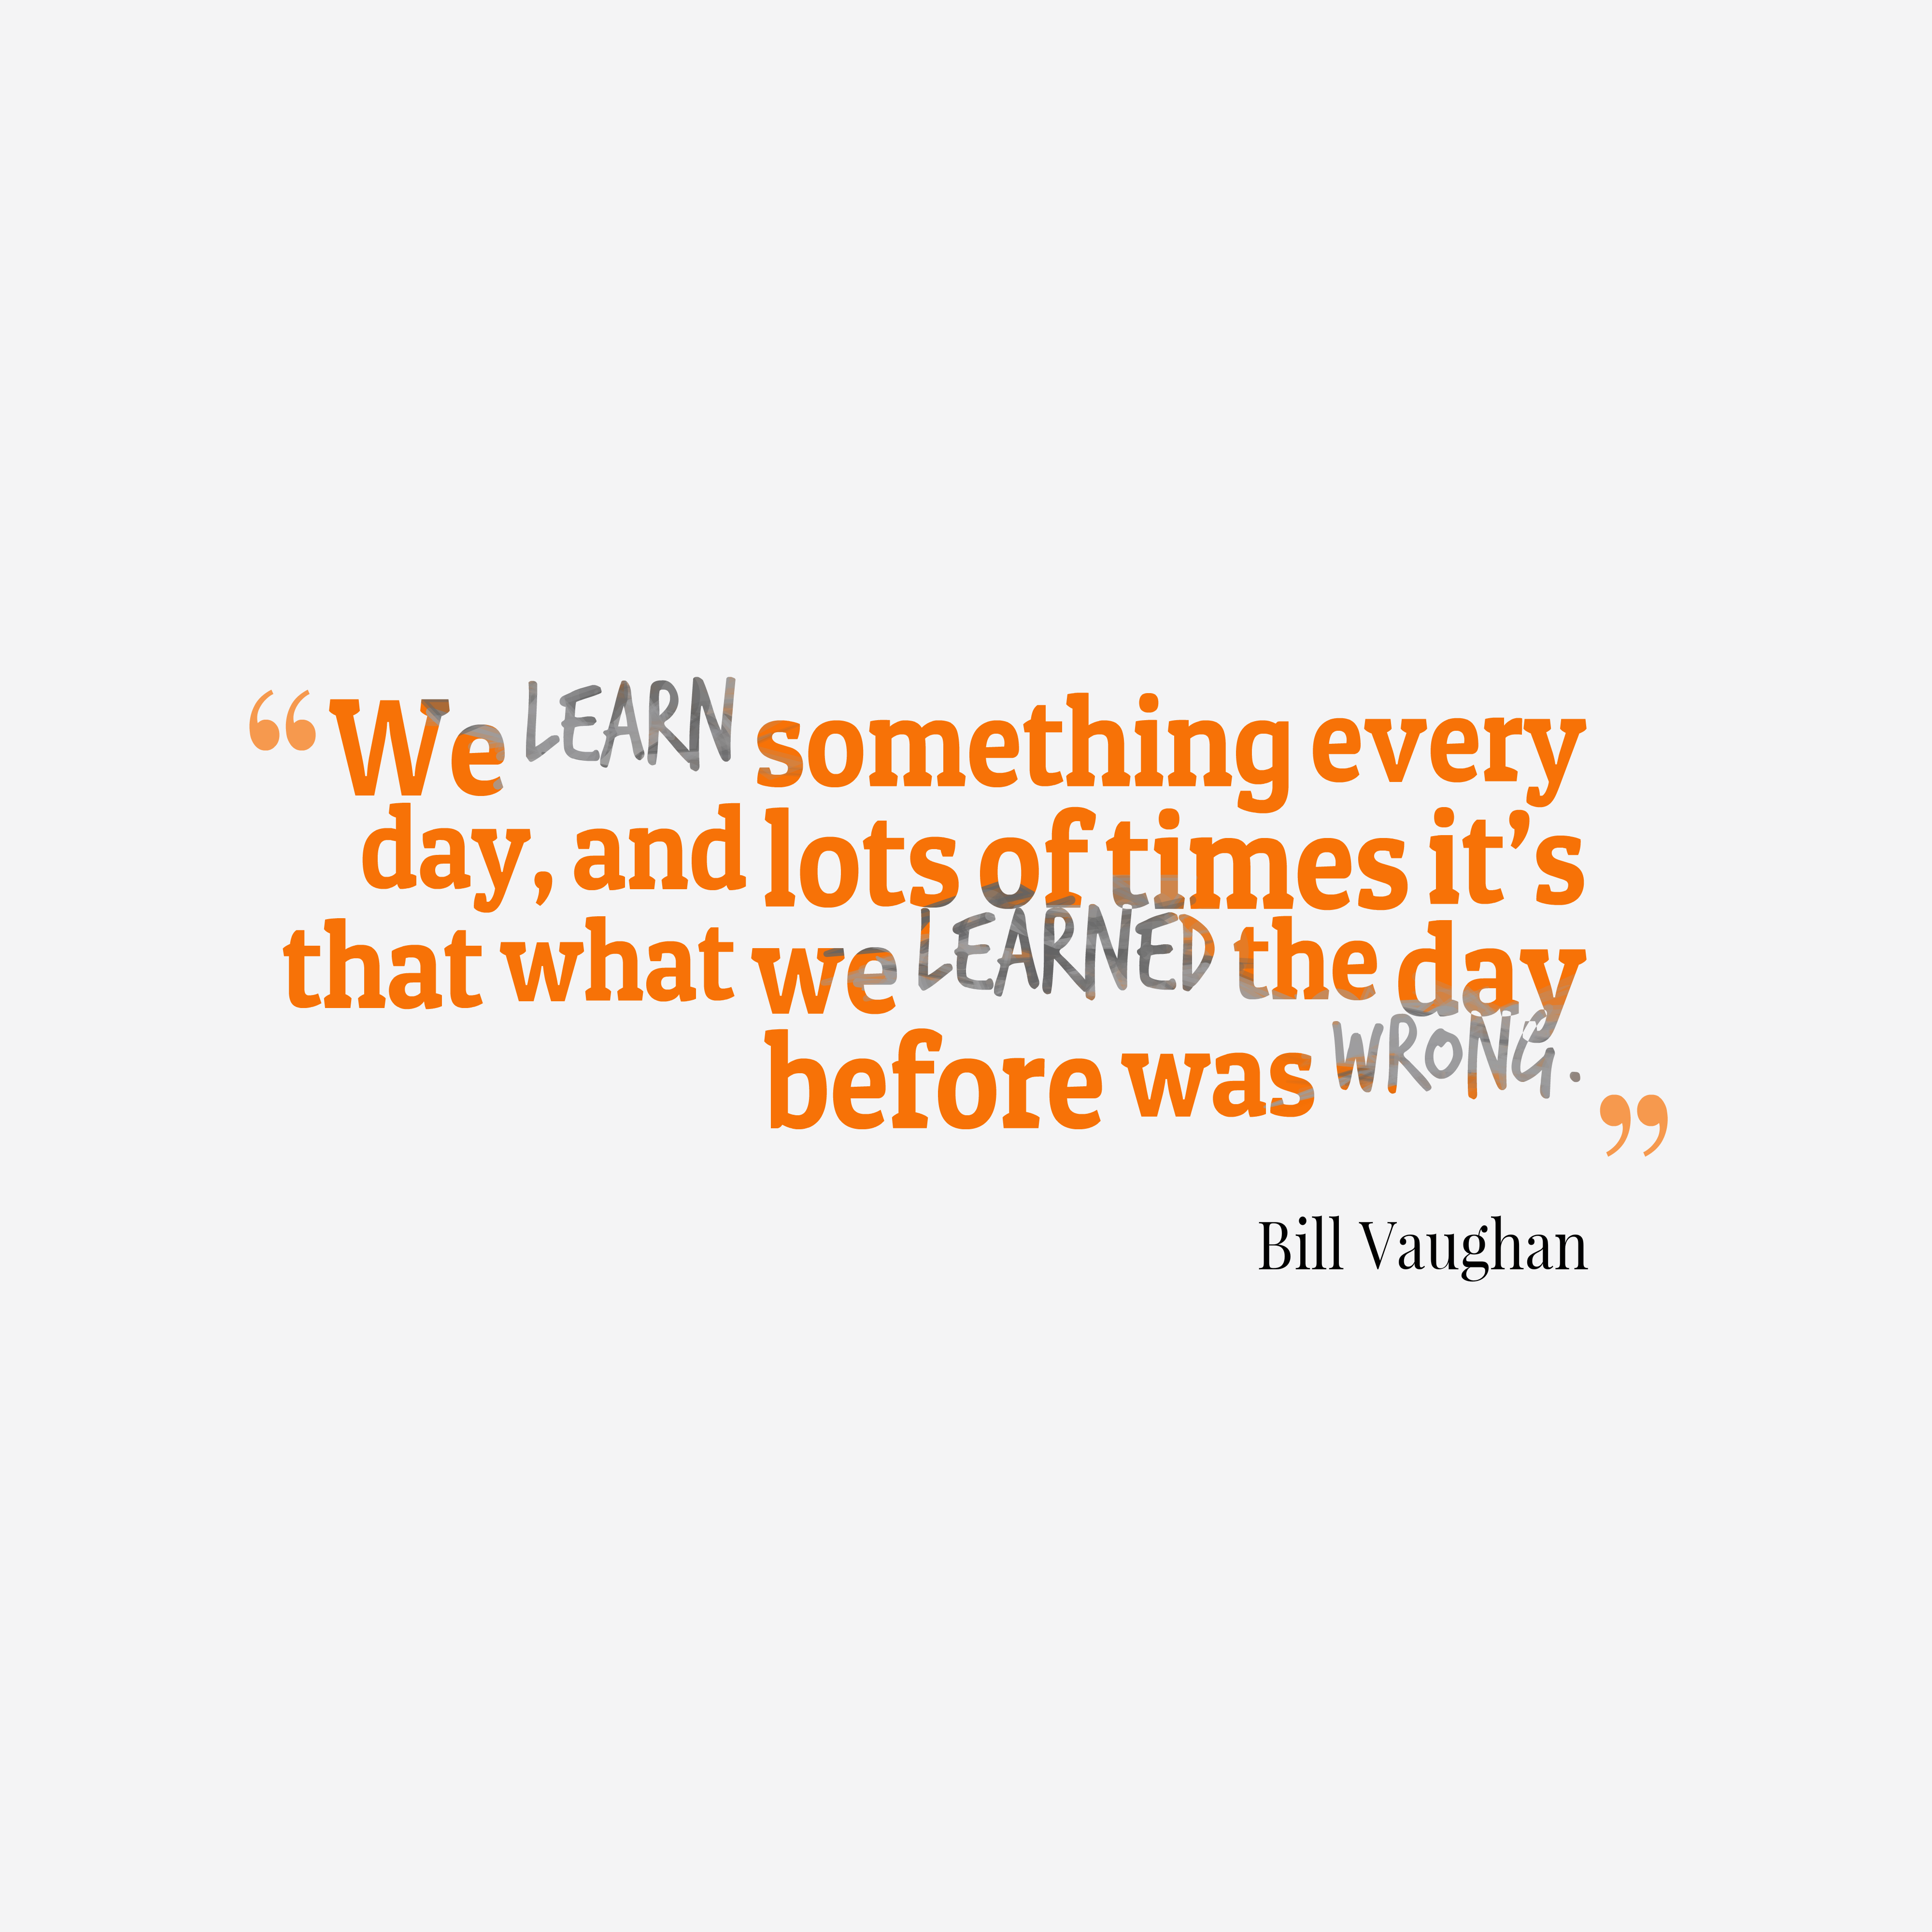 Quotes image of We learn something every day, and lots of times it's that what we learned the day before was wrong.